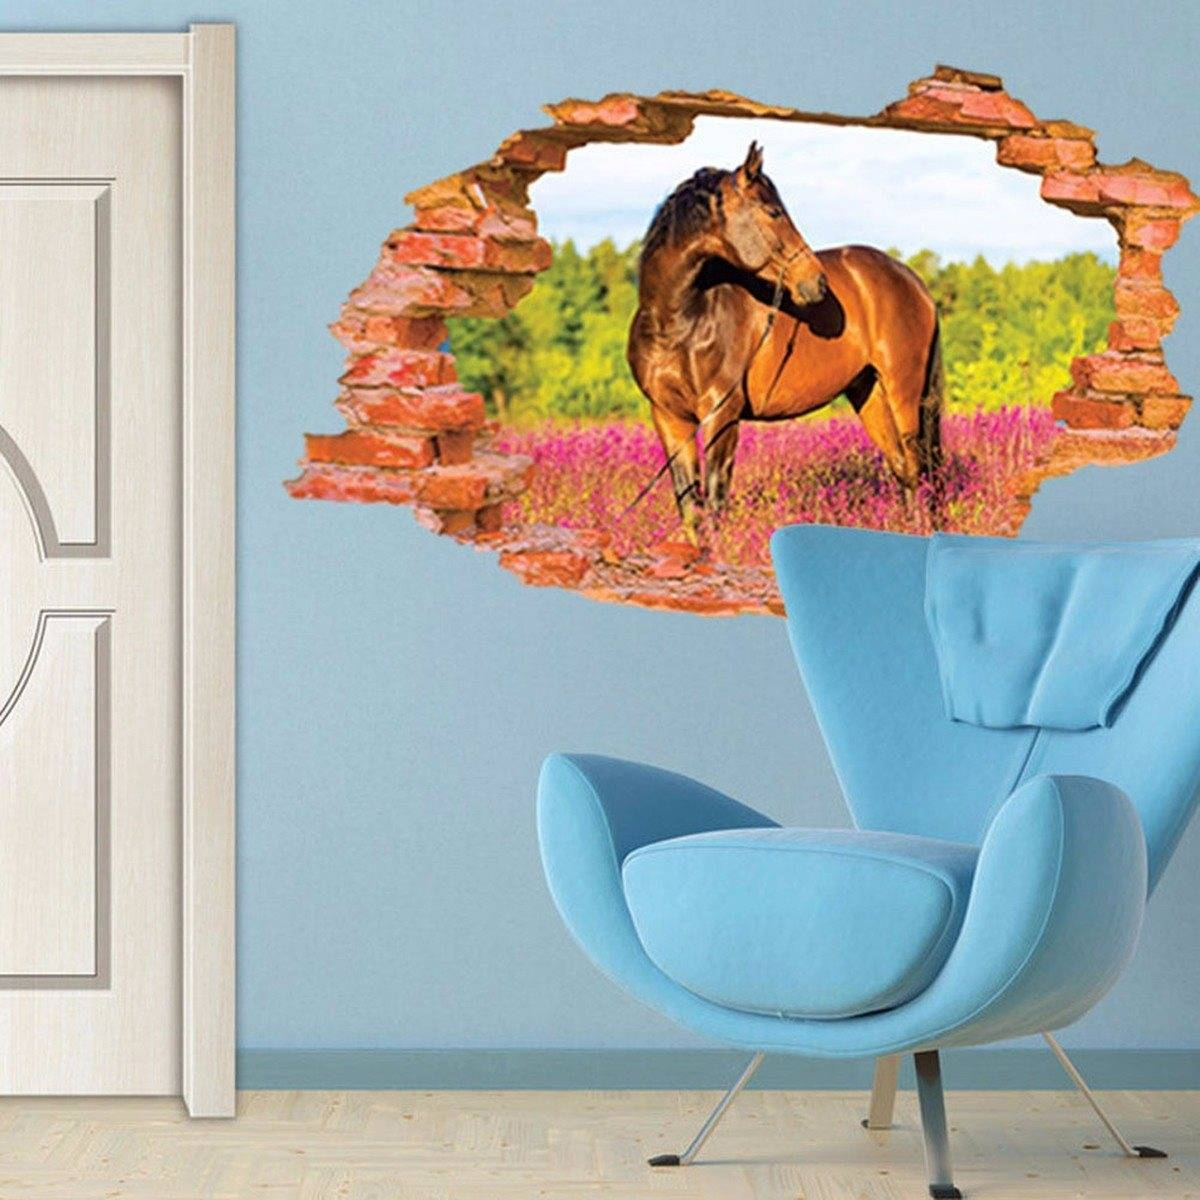 Removable Vinyl 3d Broken Horse Animal Wall Stickers Landscape In Recent Vinyl 3d Wall Art (View 17 of 20)